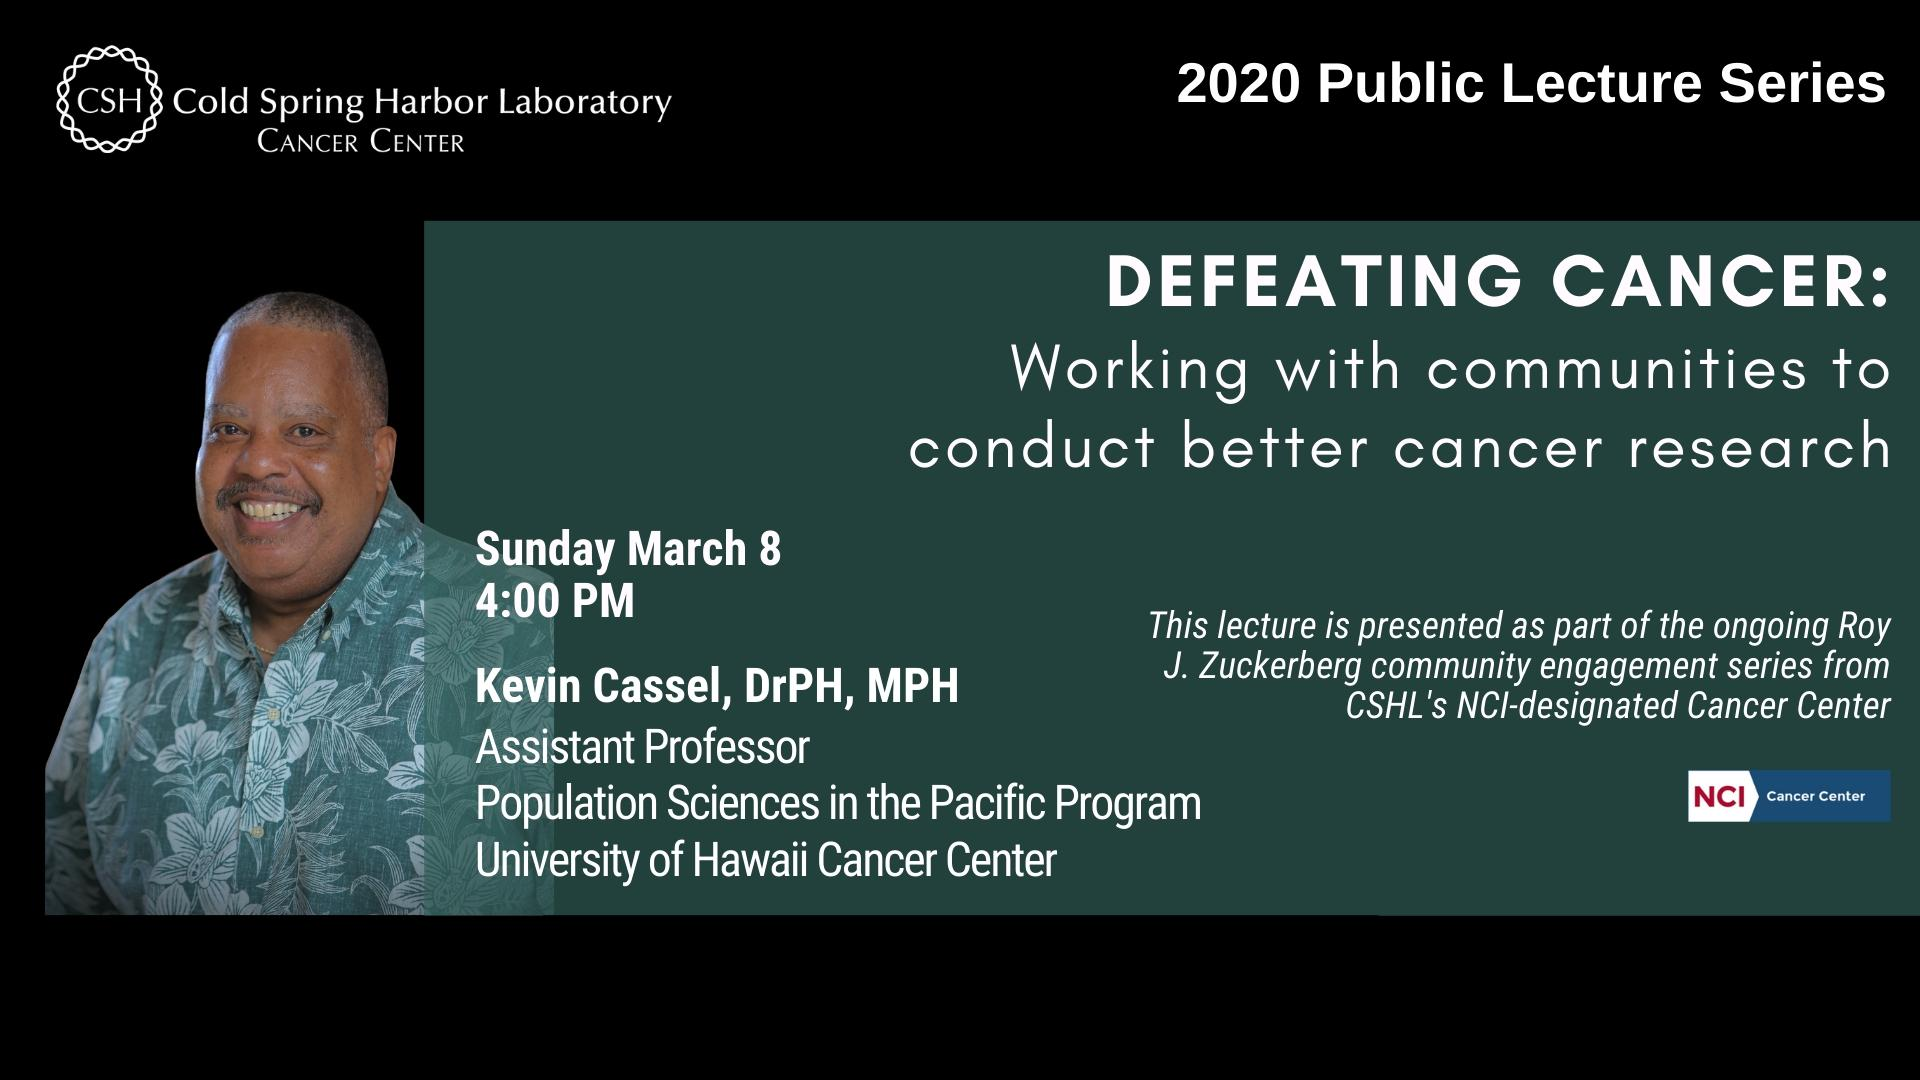 Information about March 8 2020 Cancer Center public lecture with Kevin Cassel, DrPH, MPH